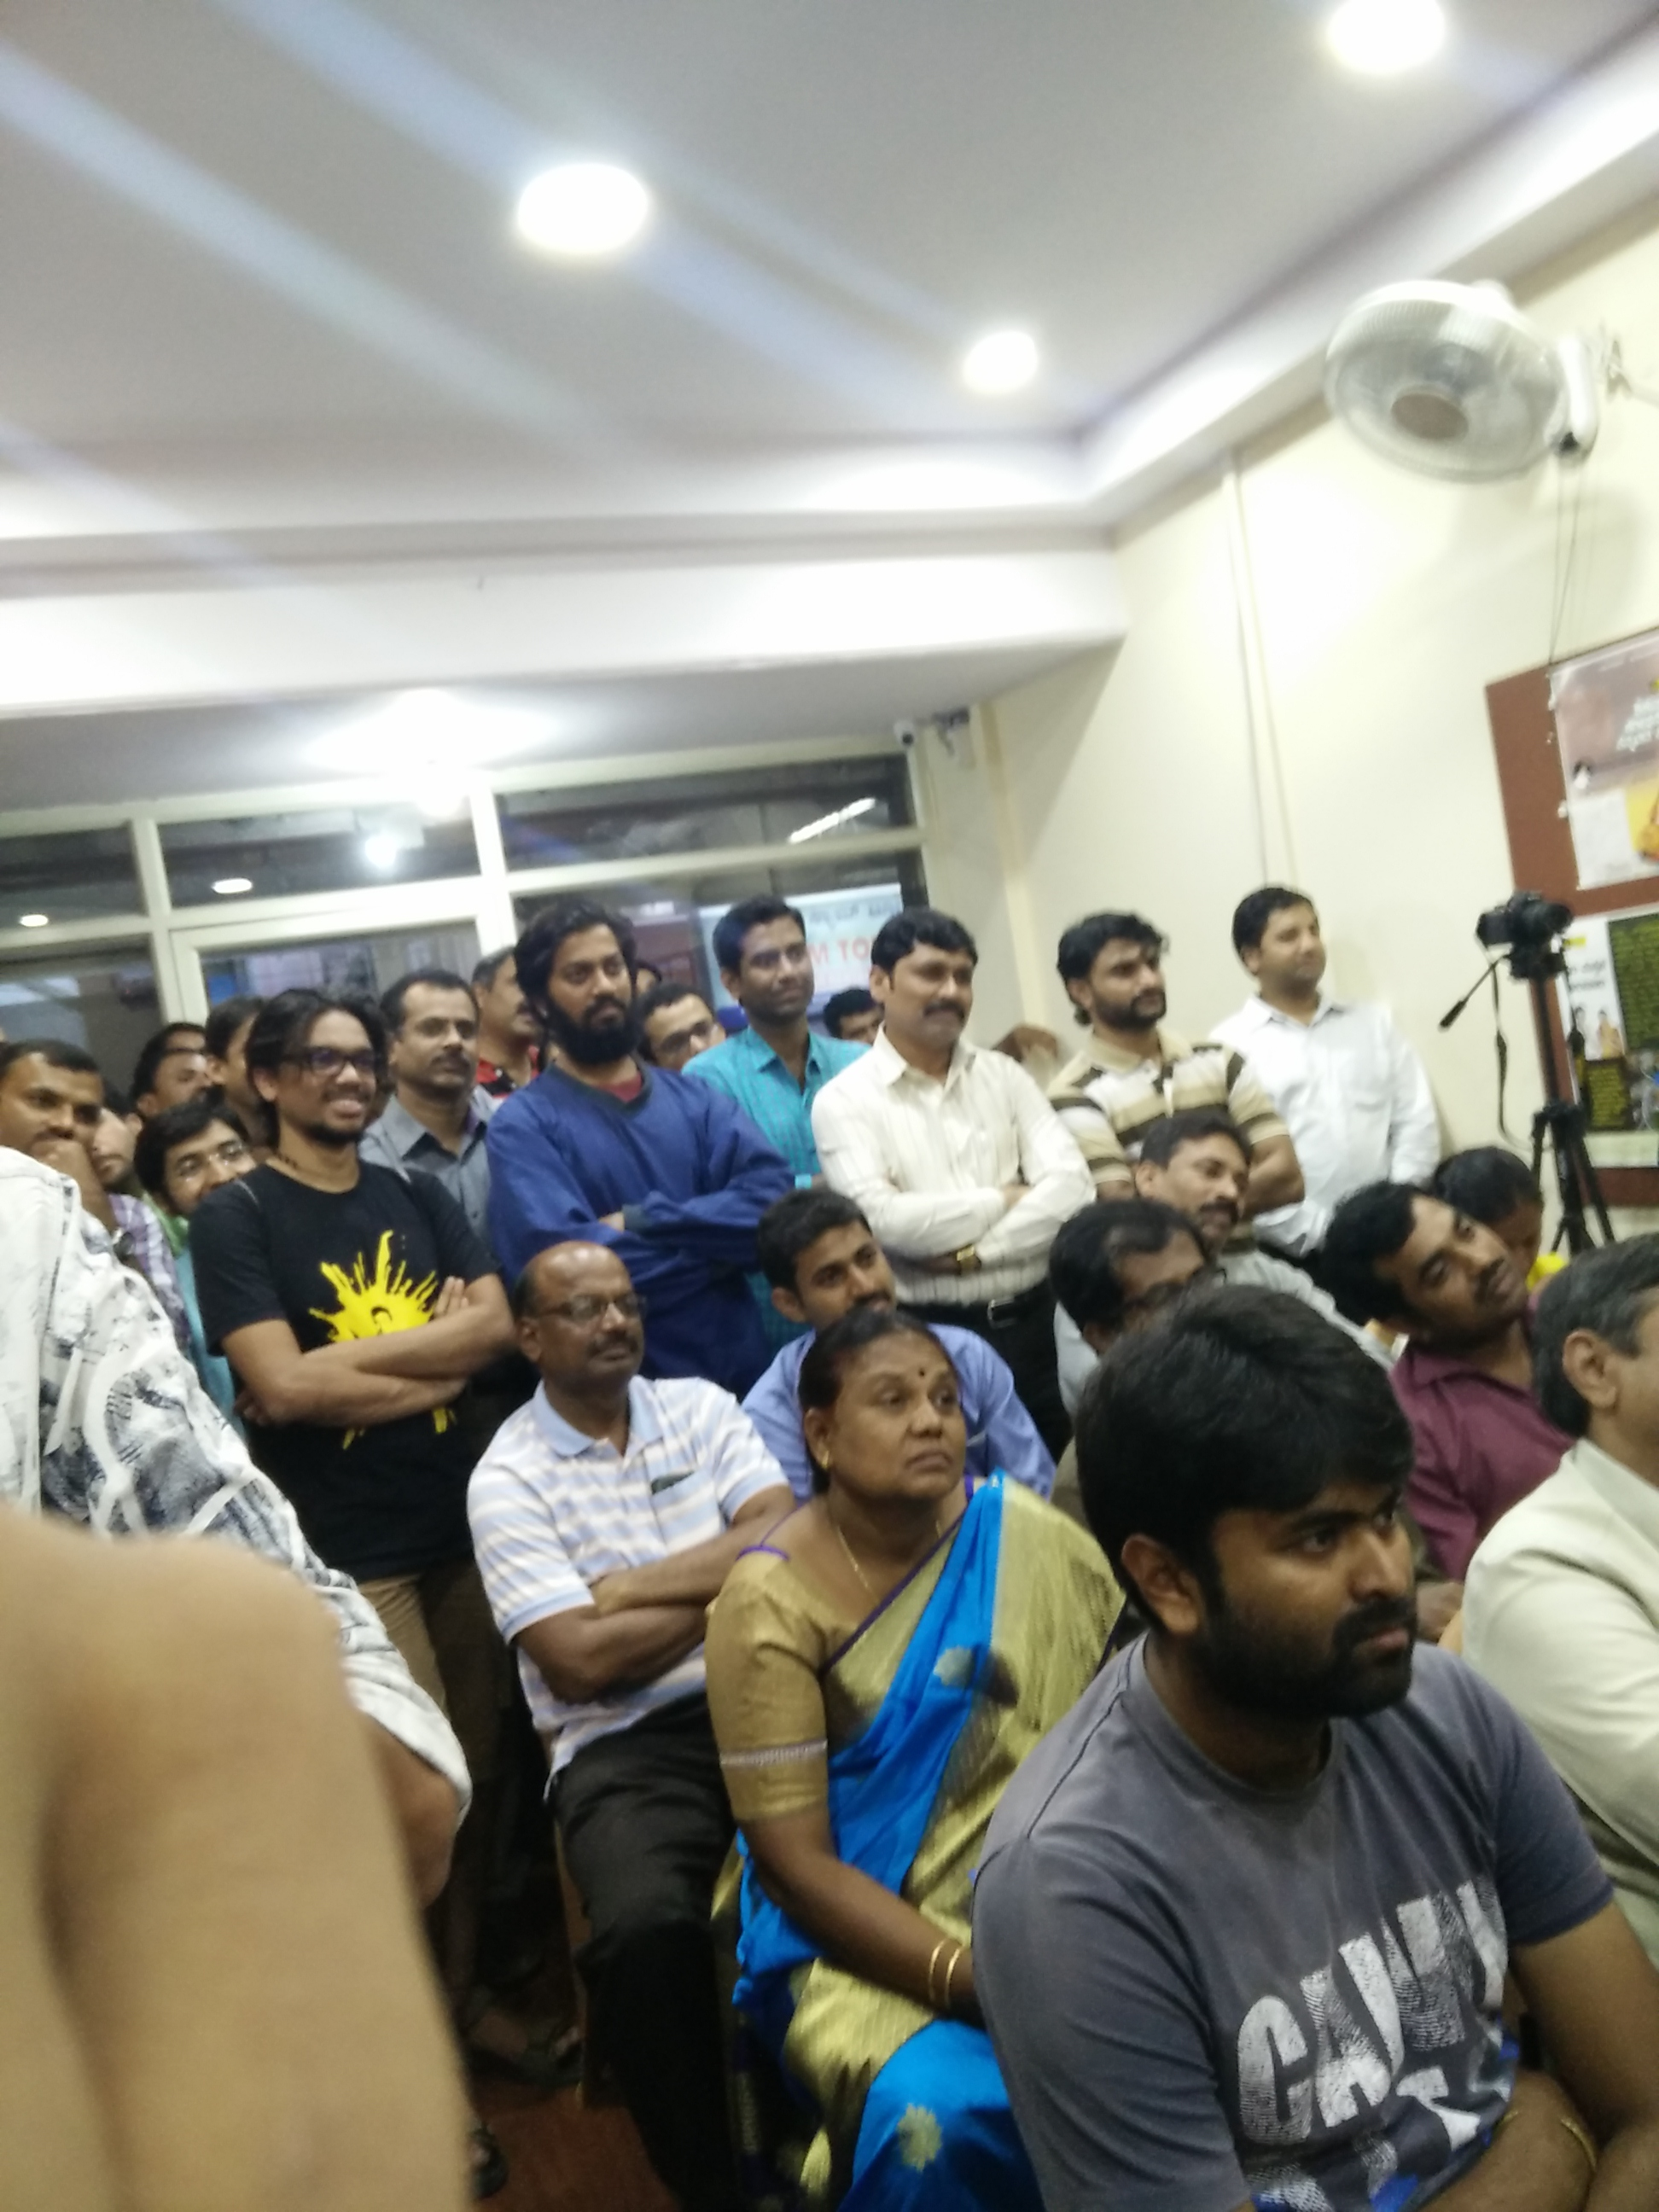 The audience at a book event at Munnota Bookshop